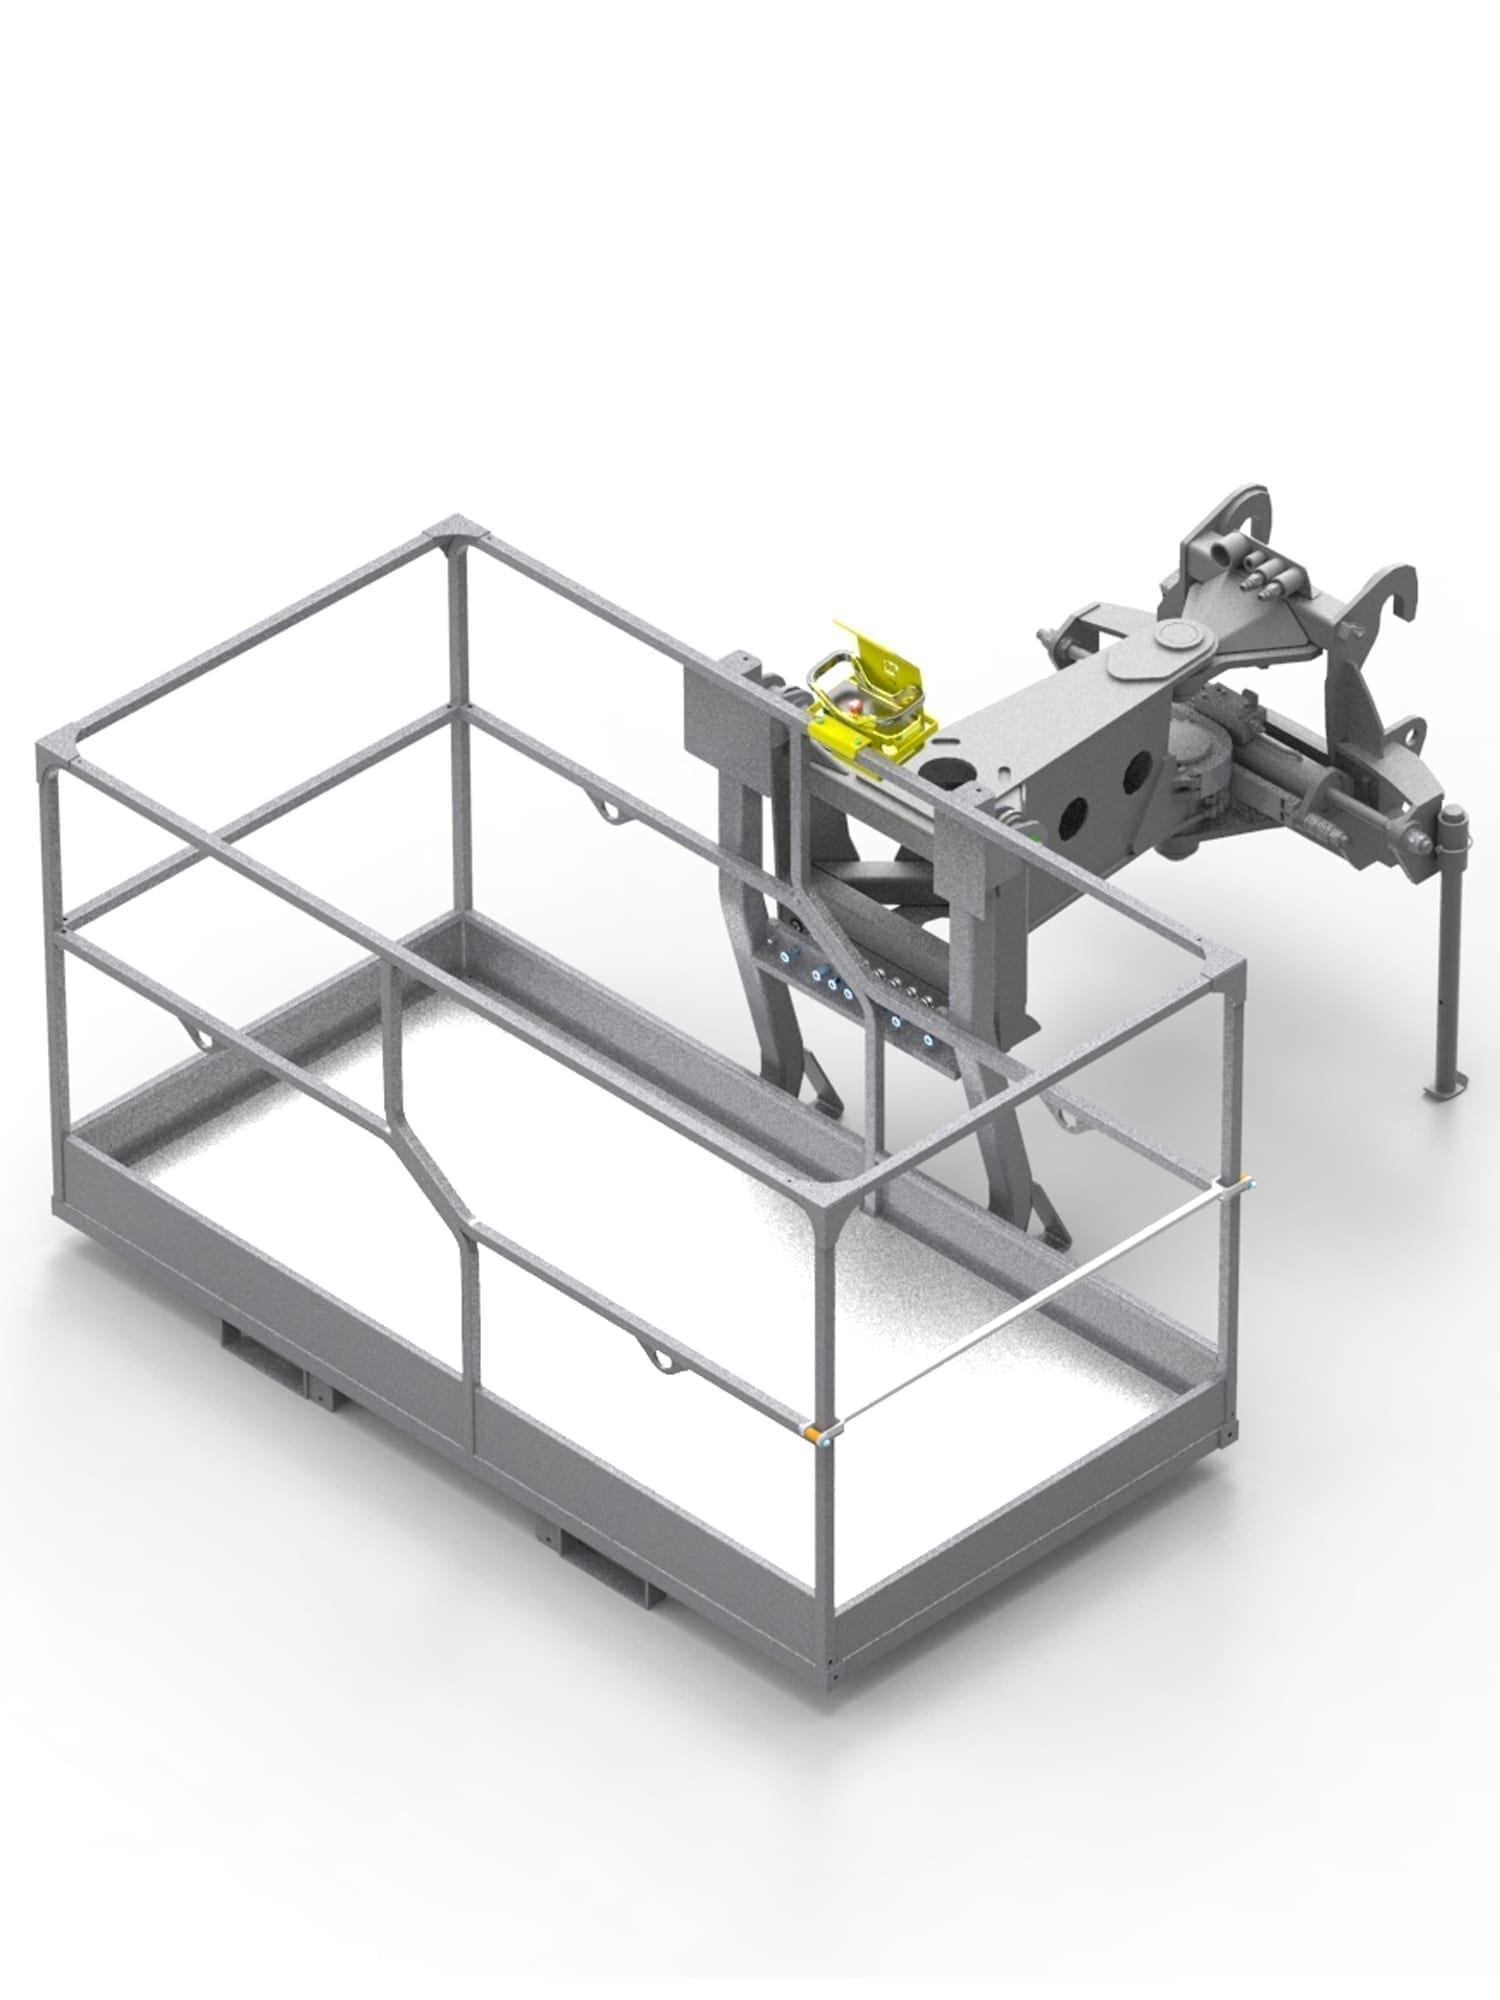 NON-EXTENDIBLE ROTATING SAFETY BASKET 2.2 M – 500 KG